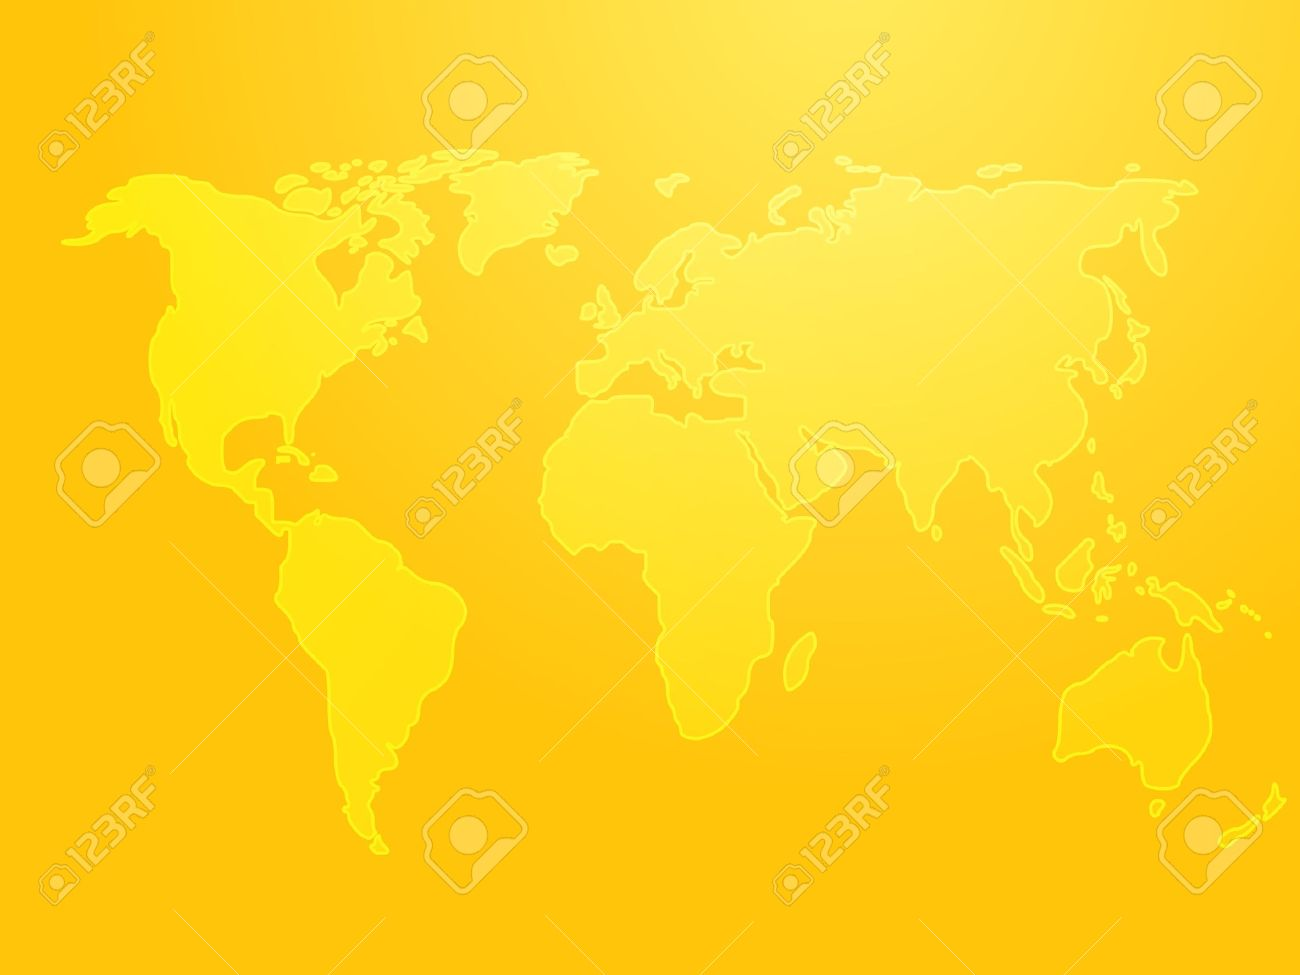 Map of the world illustration simple outline on gradient color illustration map of the world illustration simple outline on gradient color gumiabroncs Gallery